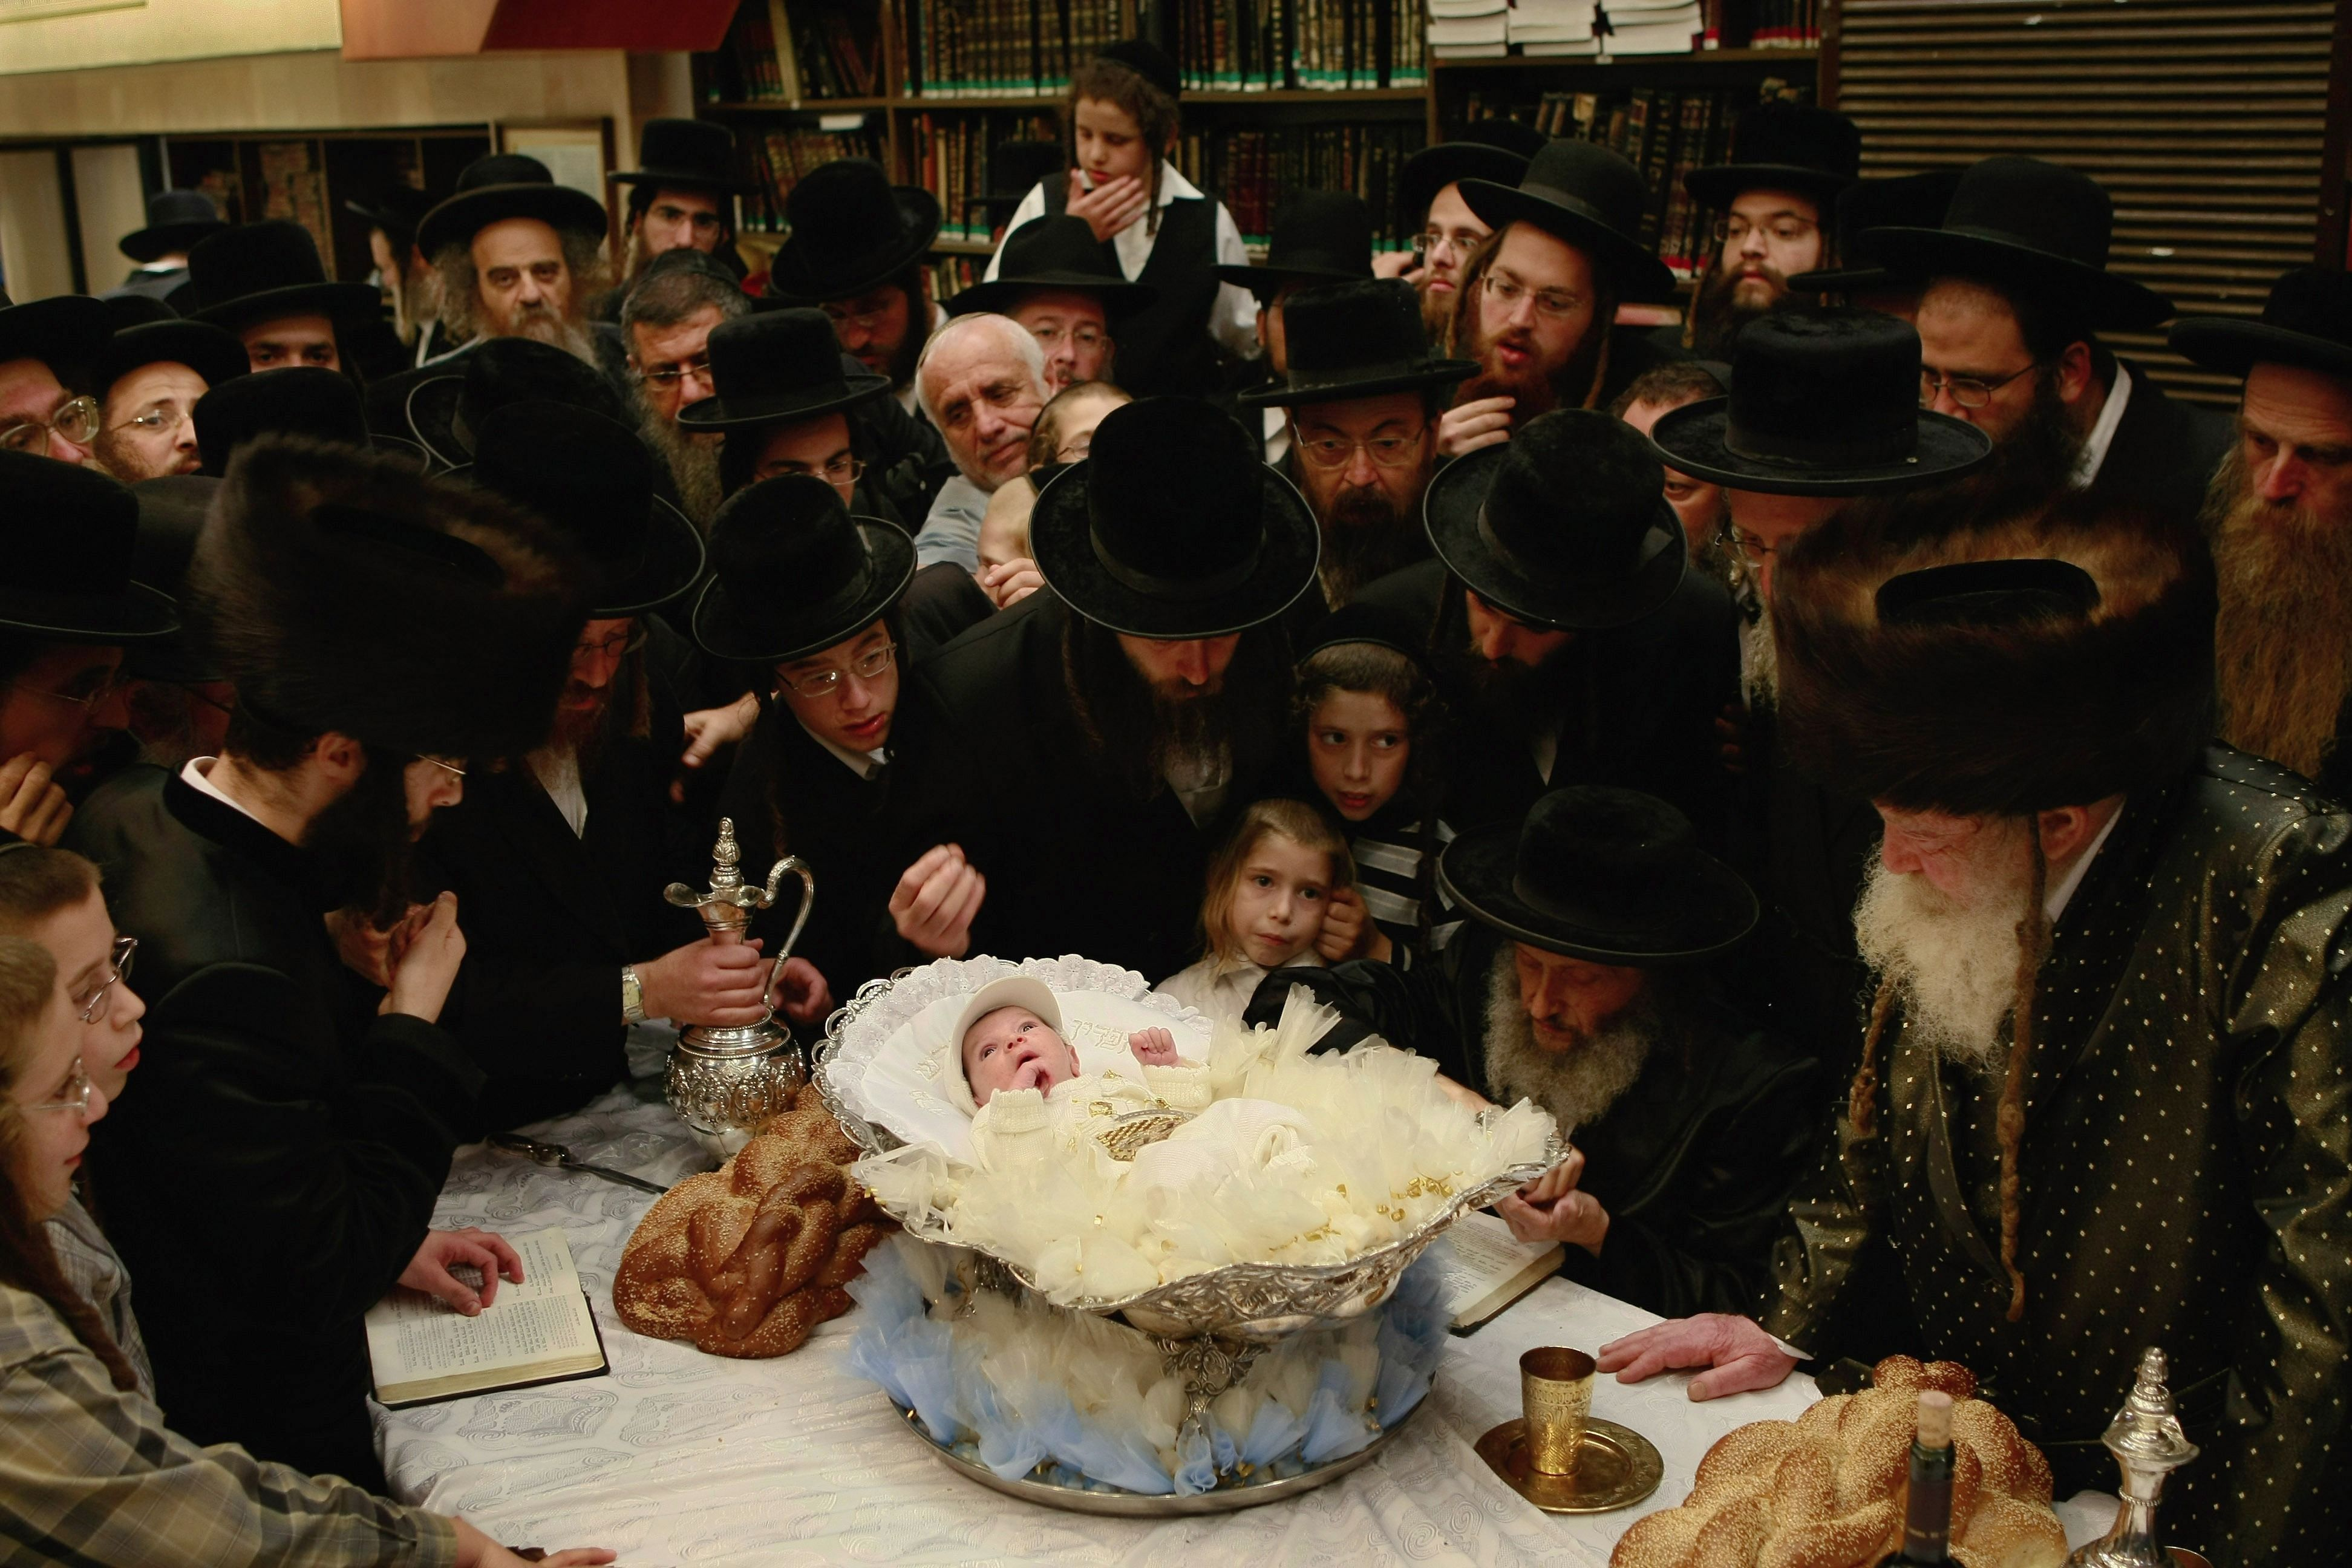 Ultra-Orthodox Jews pray over month-old infant Yehoshua Rosenboim, who lies in a silver bowl on the rabbi's table, as they perform the Redemption Of The First Born ceremony at the Lalov synagogue July 31, 2008 in Bnei Brak, Israel.